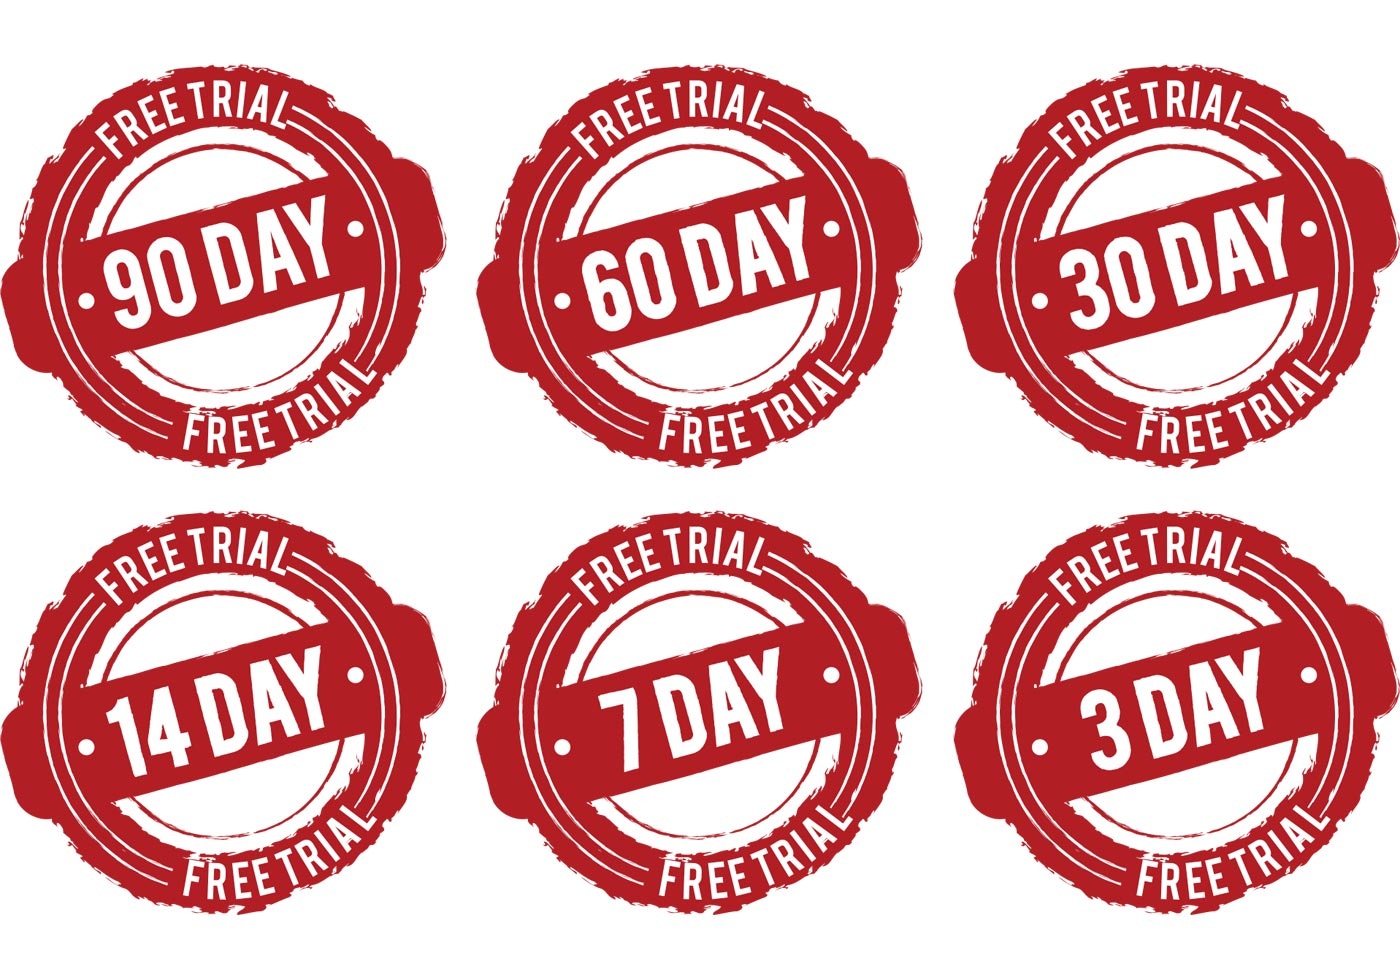 day free trial vectors